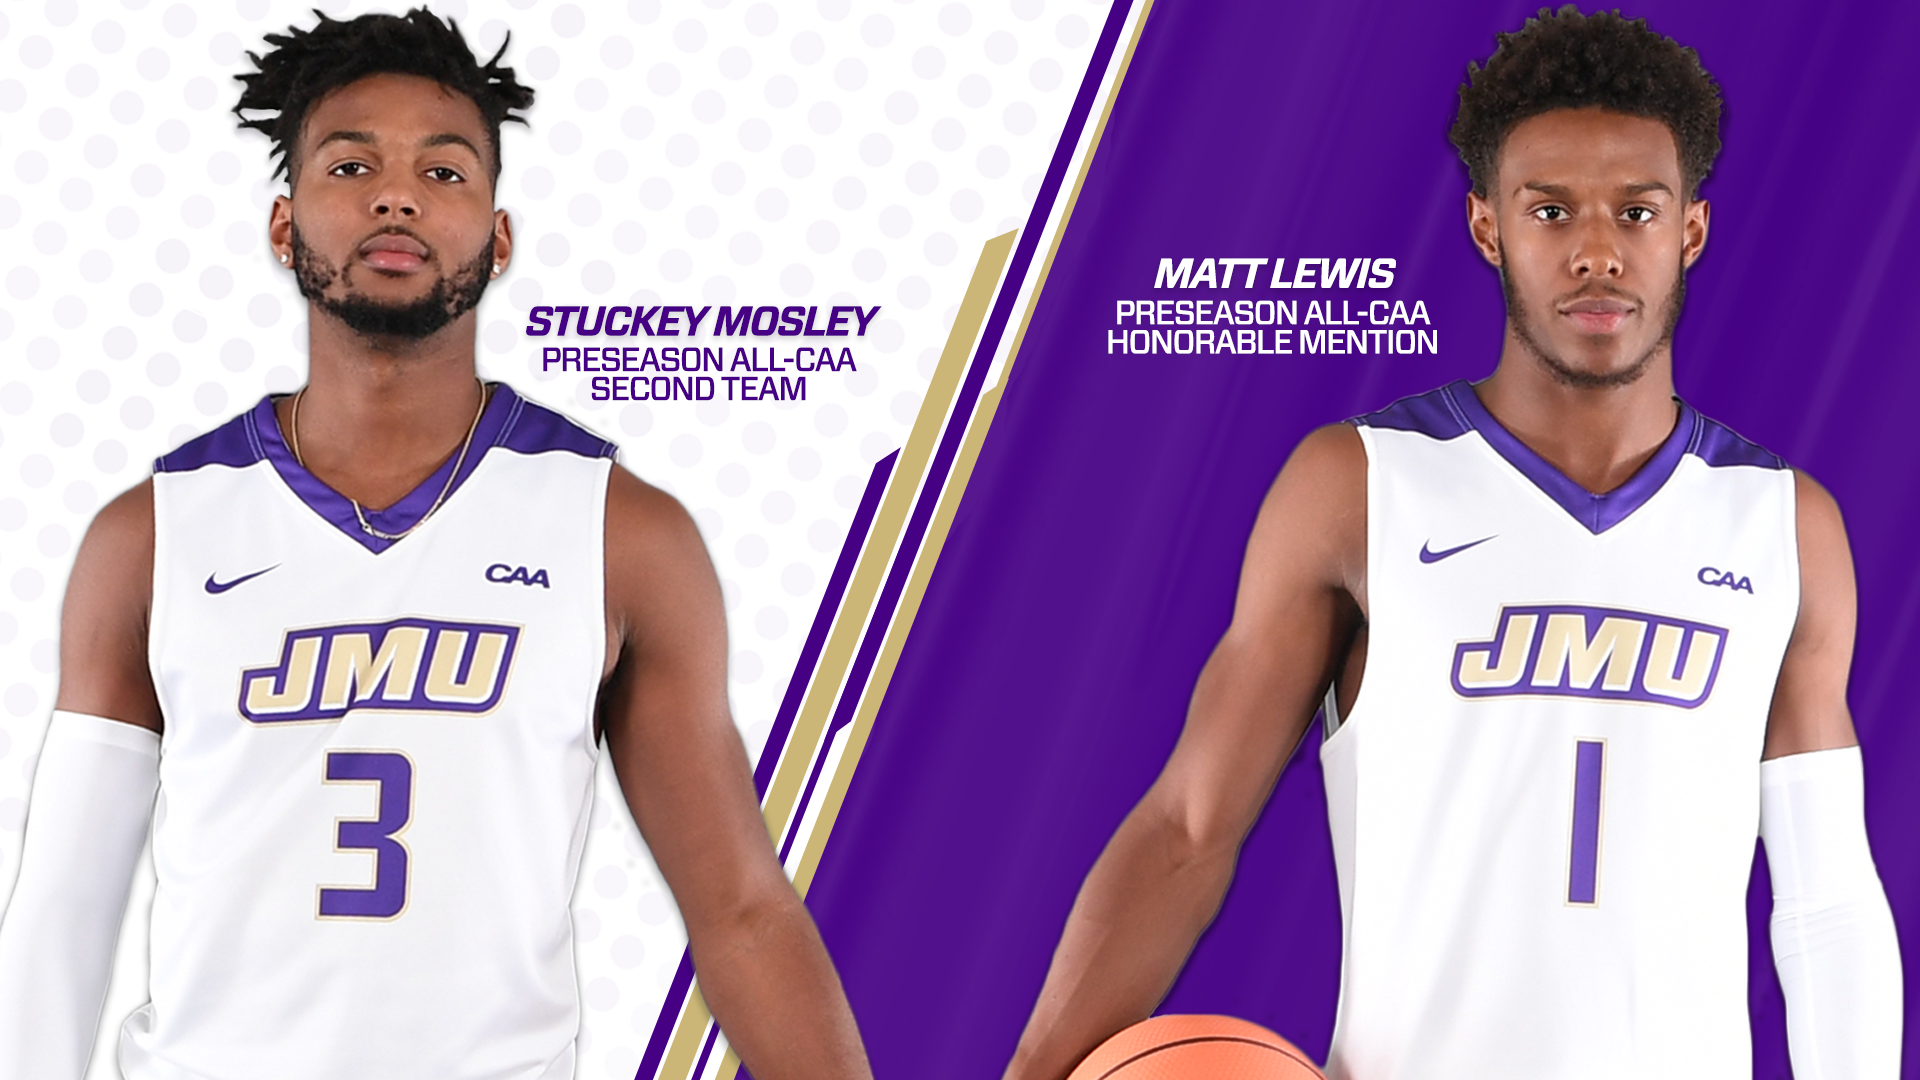 Men's Basketball: Mosley, Lewis Named Preseason All-CAA; Dukes Picked Sixth